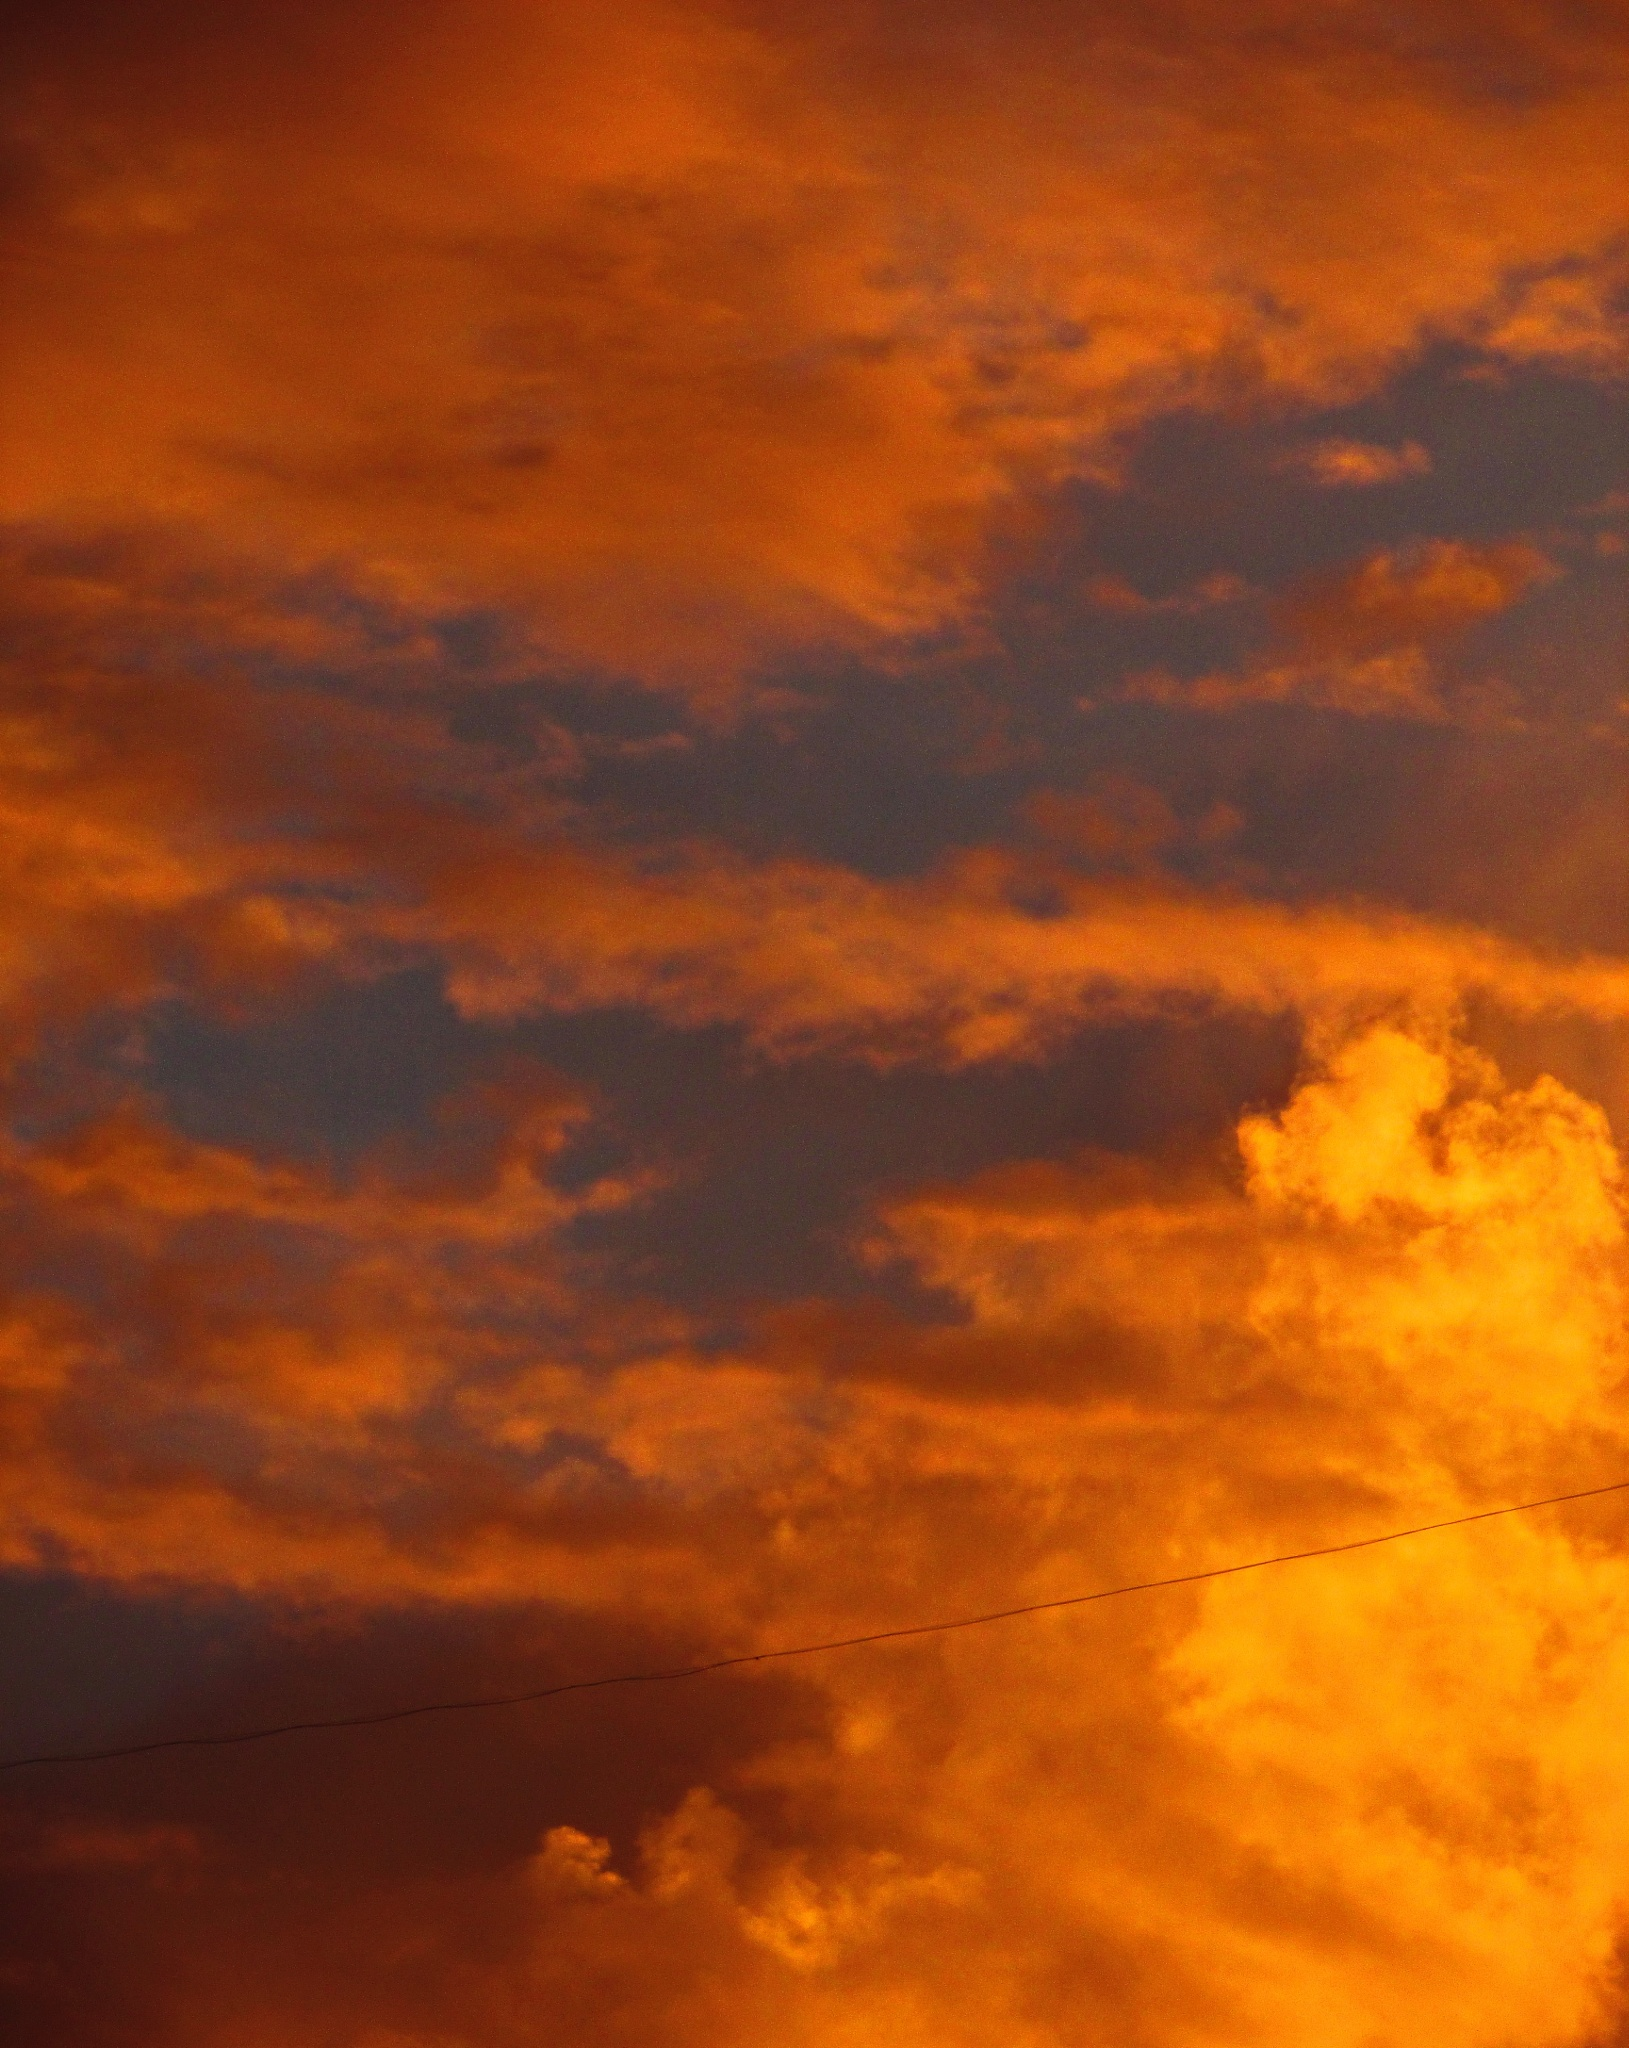 Fire in the sky 2 by freakbrother